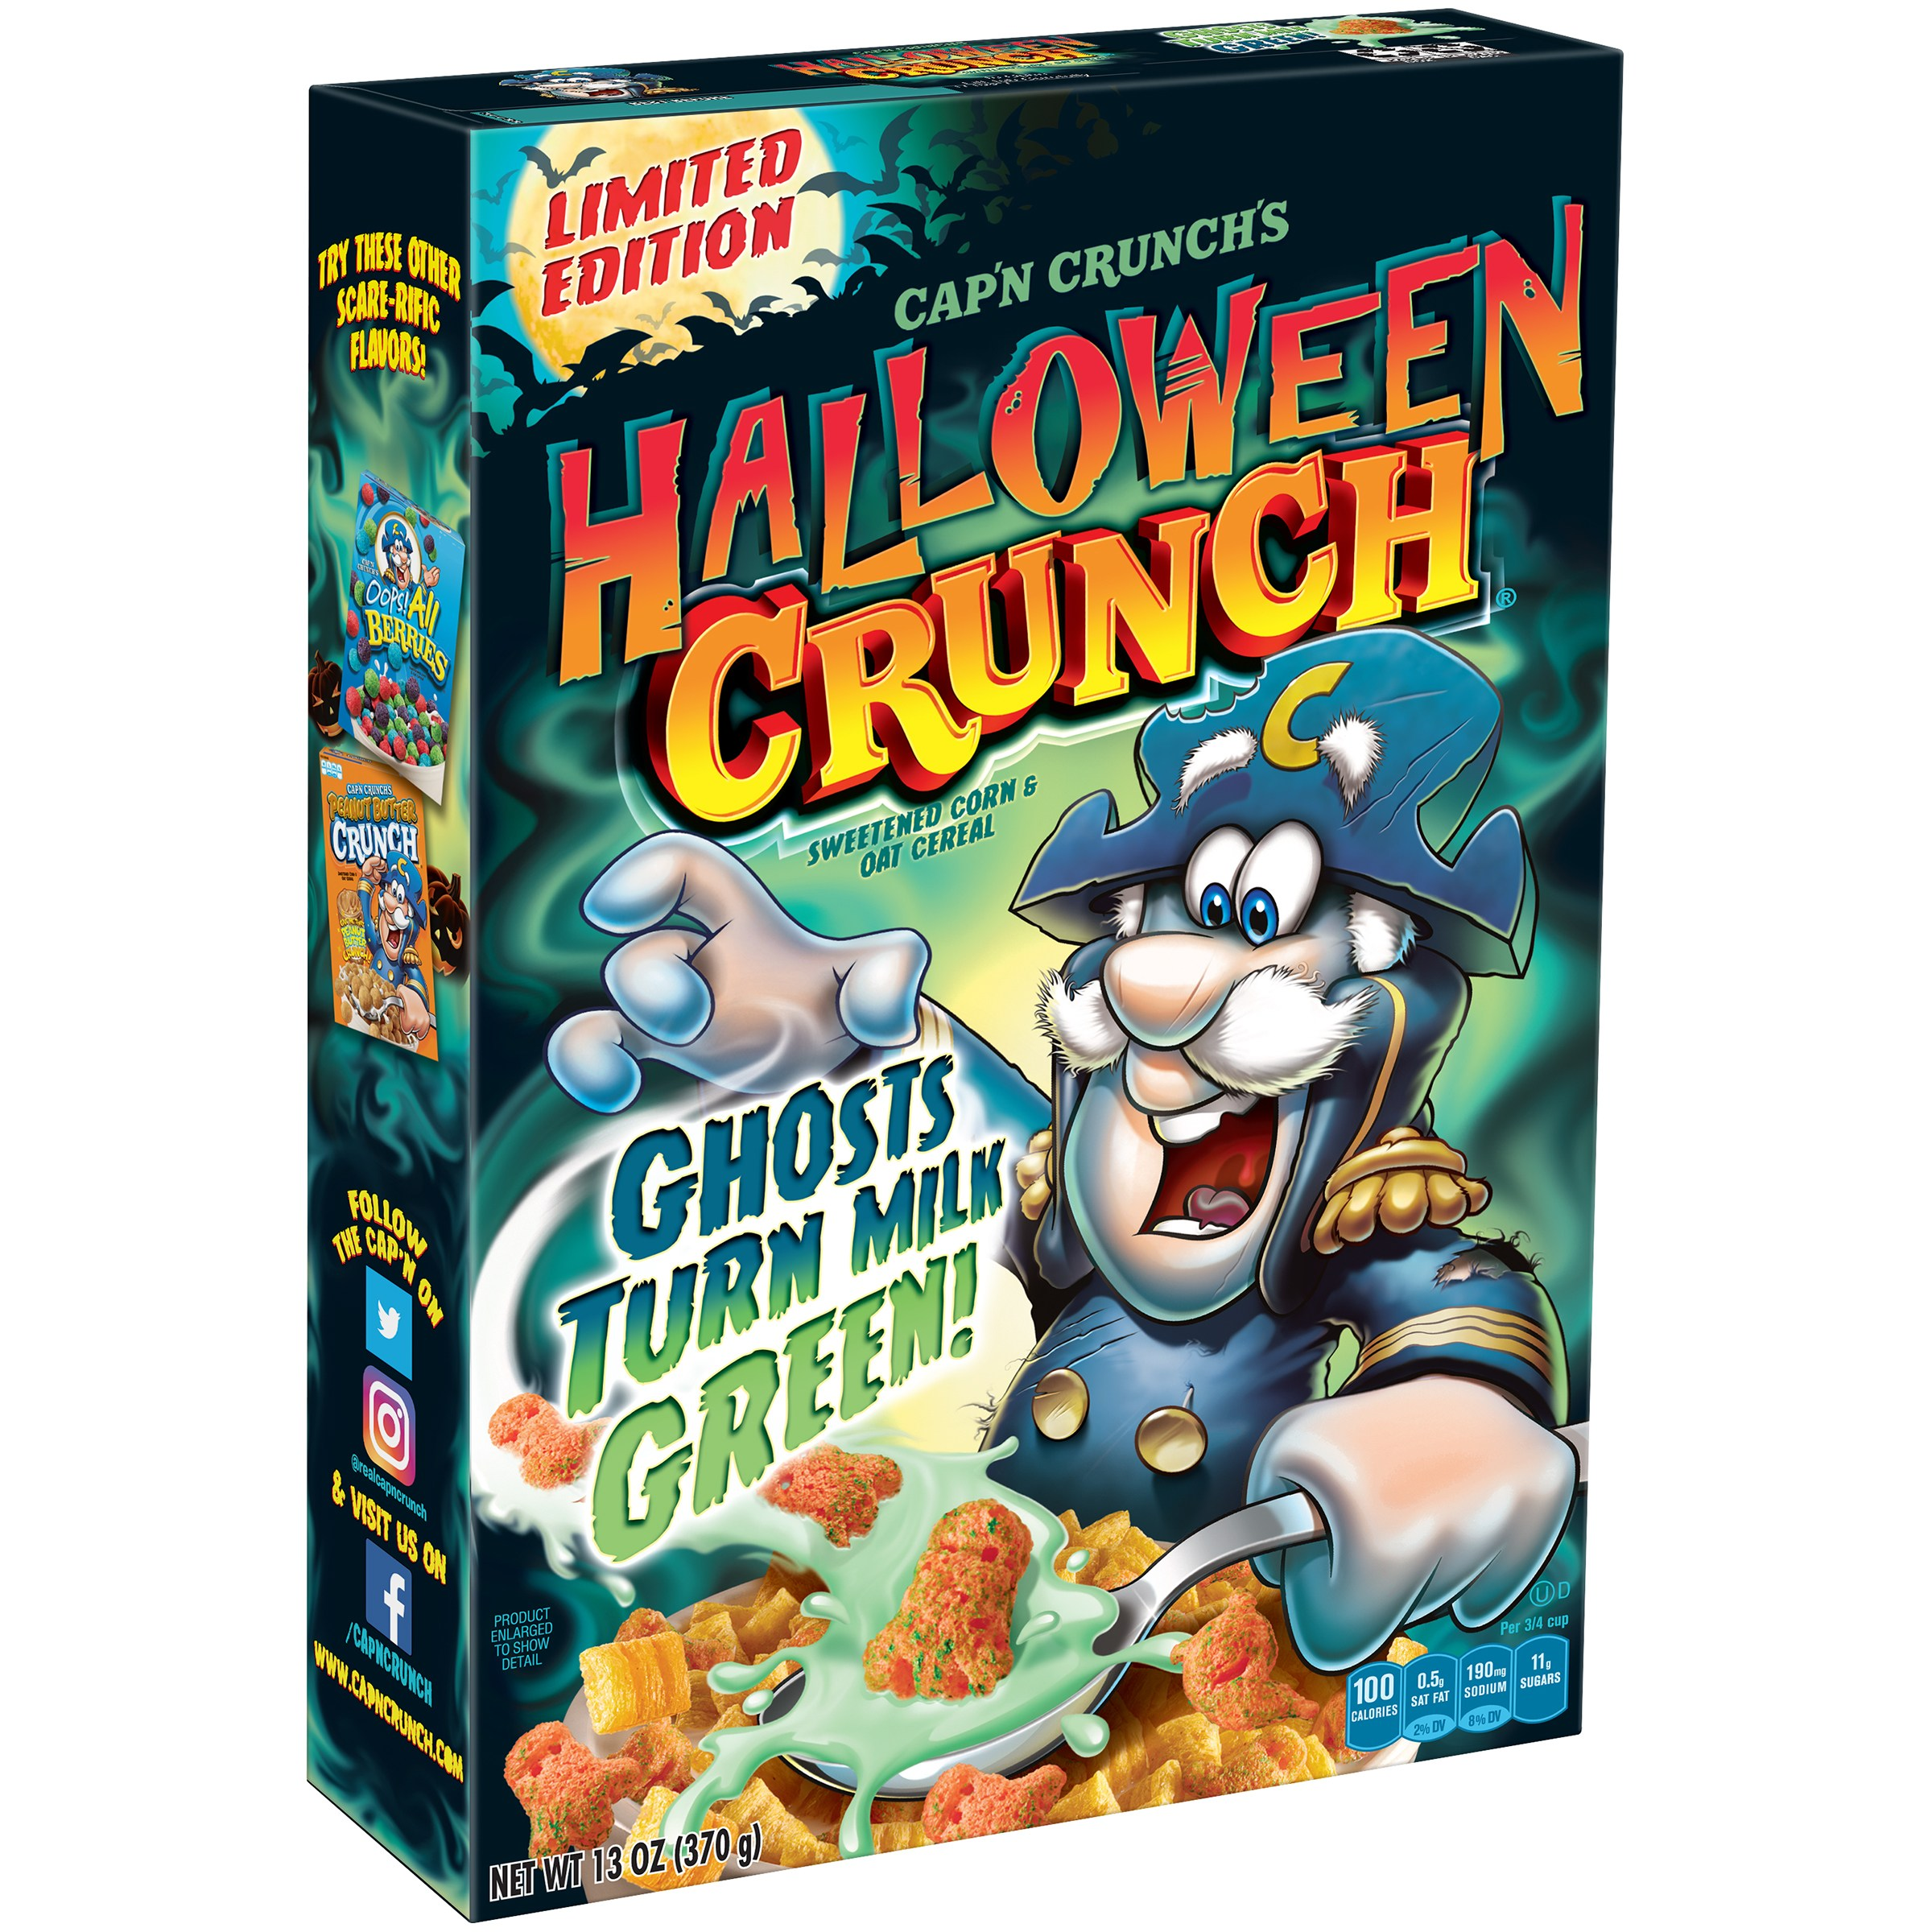 Cap'n Crunch's Halloween Crunch® Cereal 13 oz. Box - Walmart.com